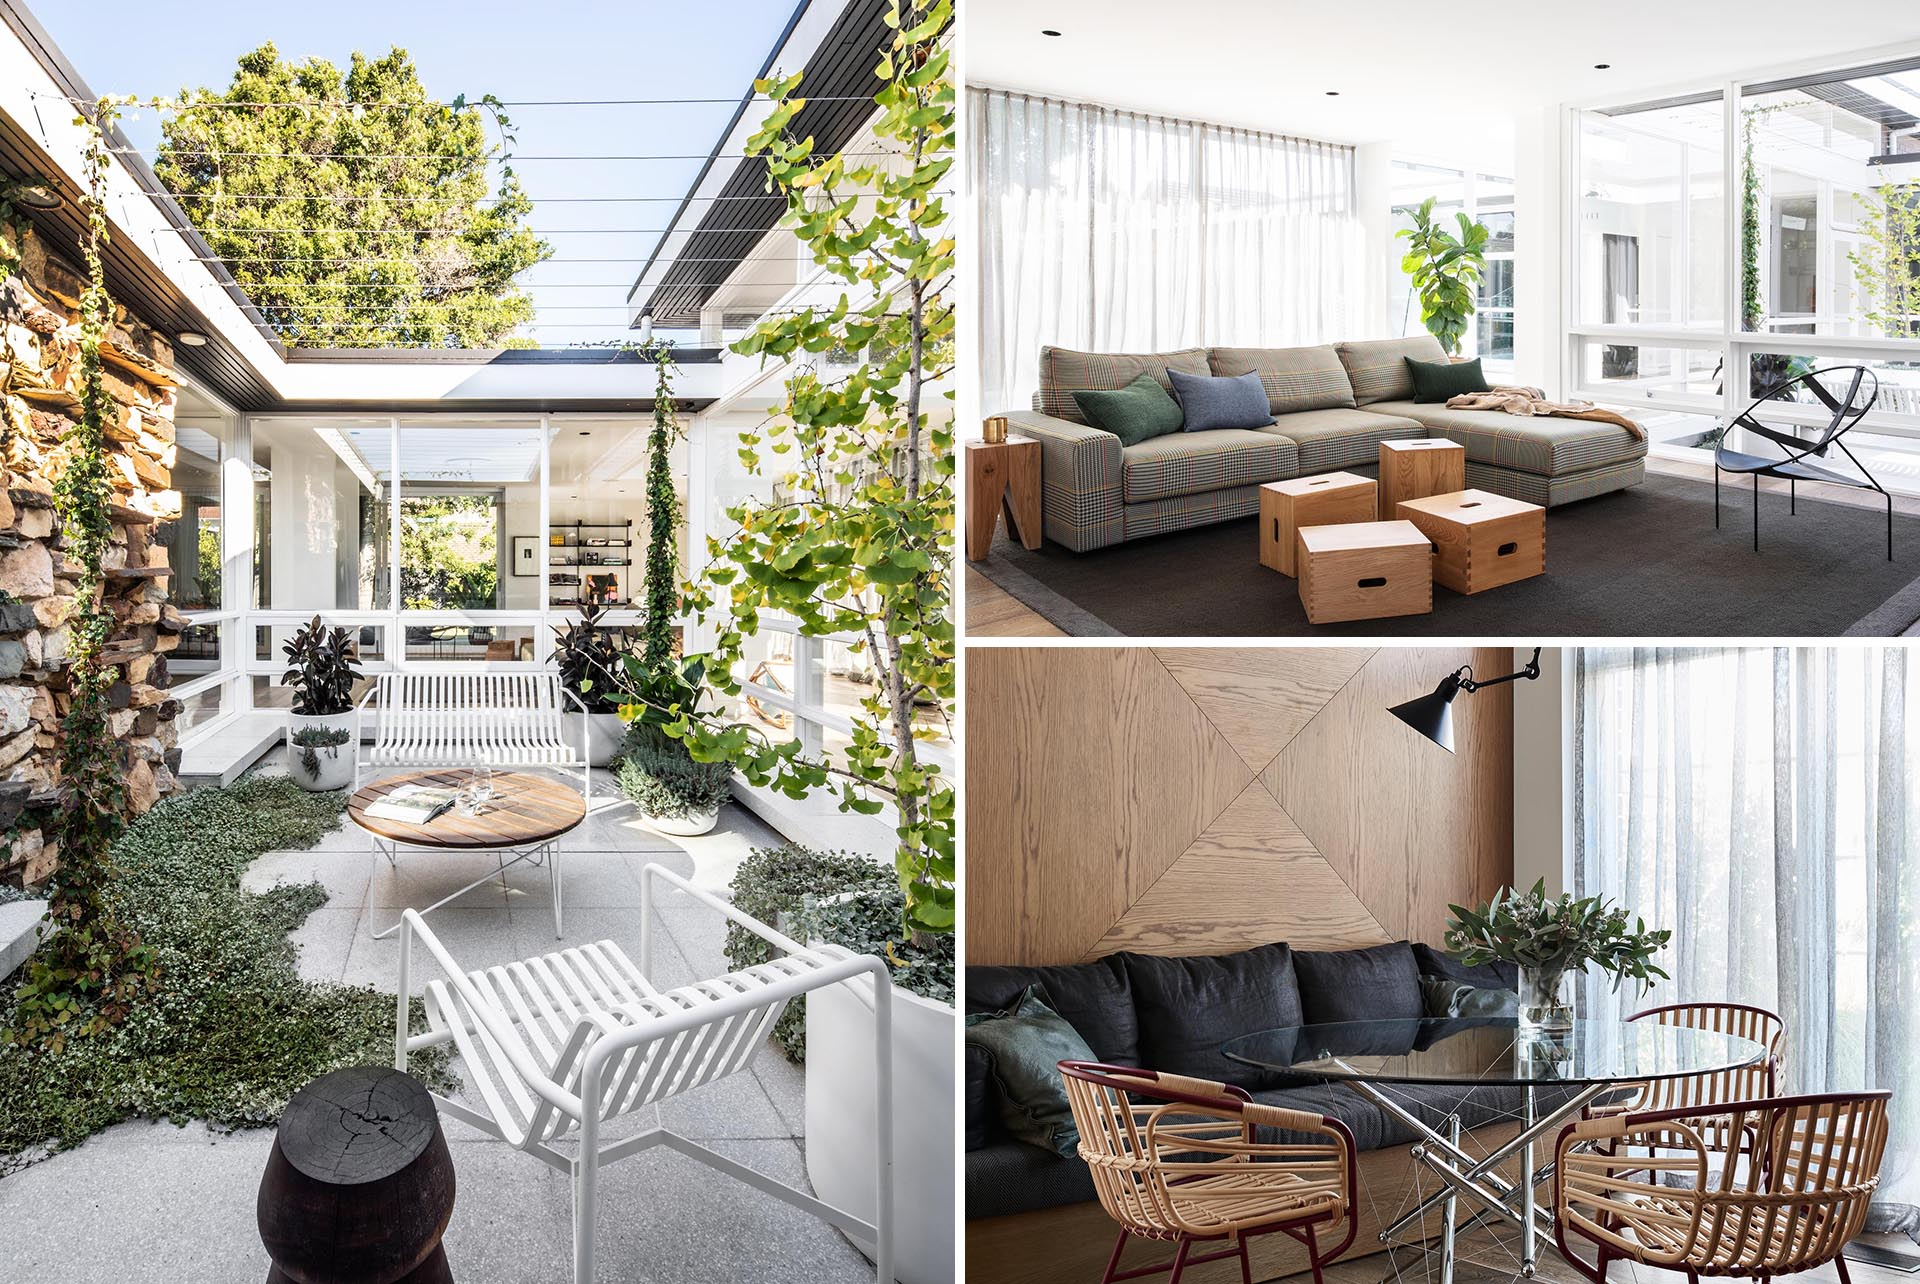 Chelsea Hing Interior Design Studio has given a contemporary new interior to a mid-century modern home that had been left untouched since the 1950s.